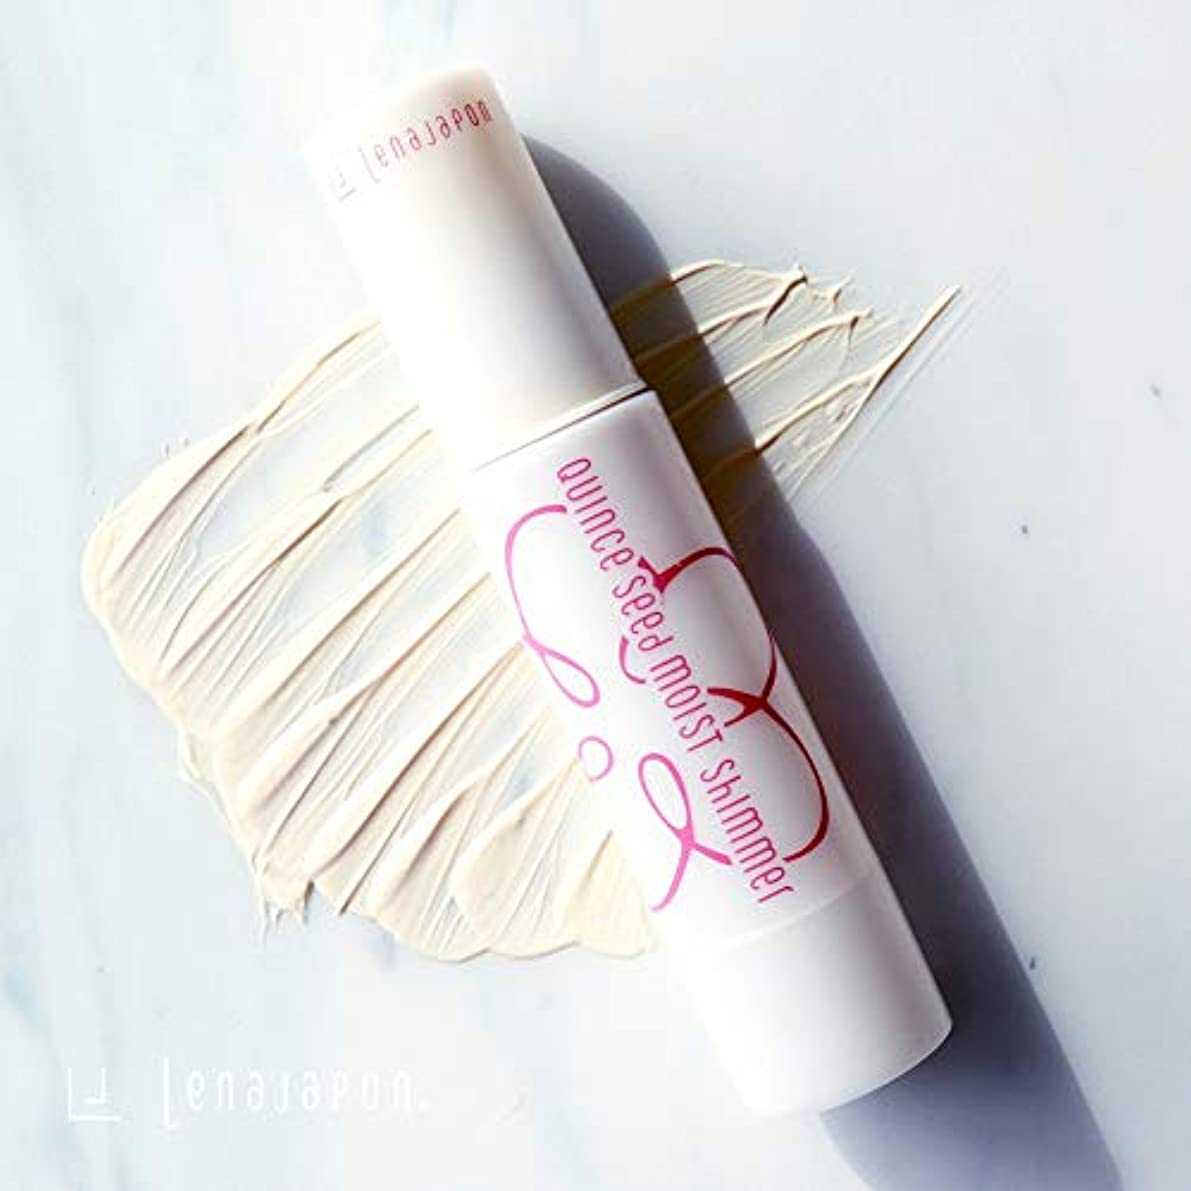 レナジャポン〈CCクリーム〉LJ モイストシマー UV / LENAJAPON〈clear CC day serum〉LJ MOIST SHIMMER UV